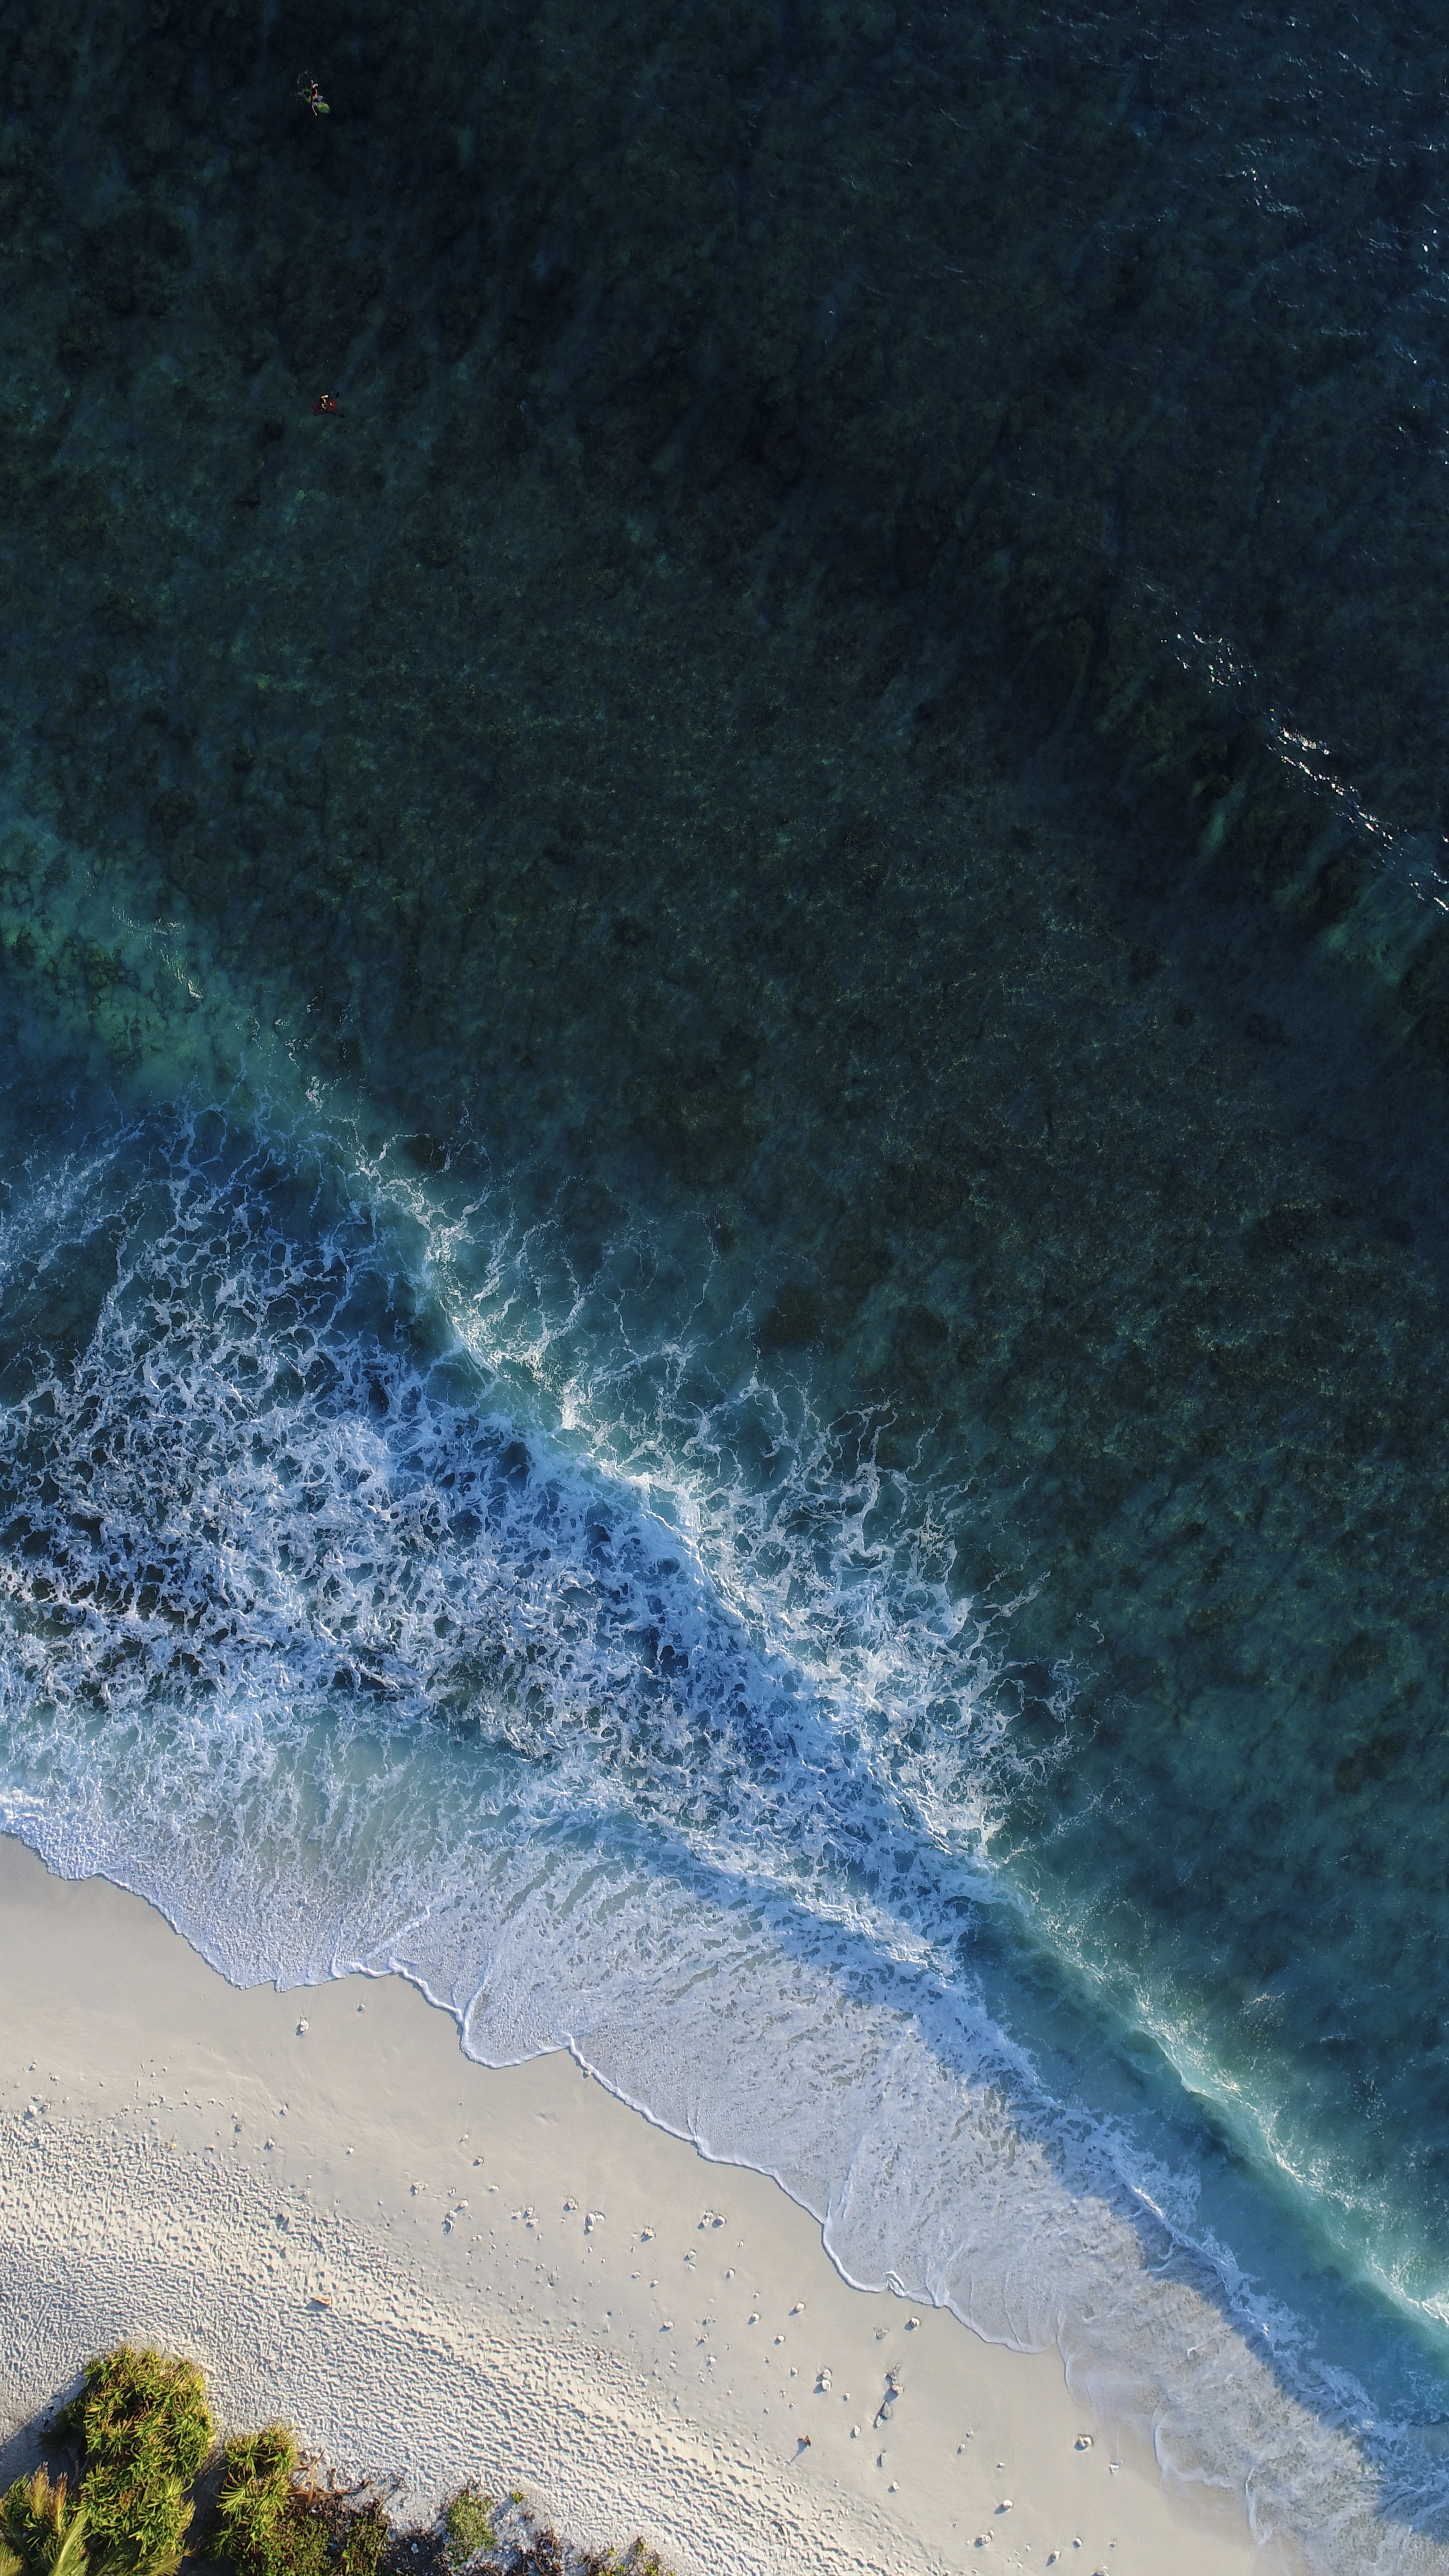 turquoise calm sea wave splashing on white sand beach aerial photography